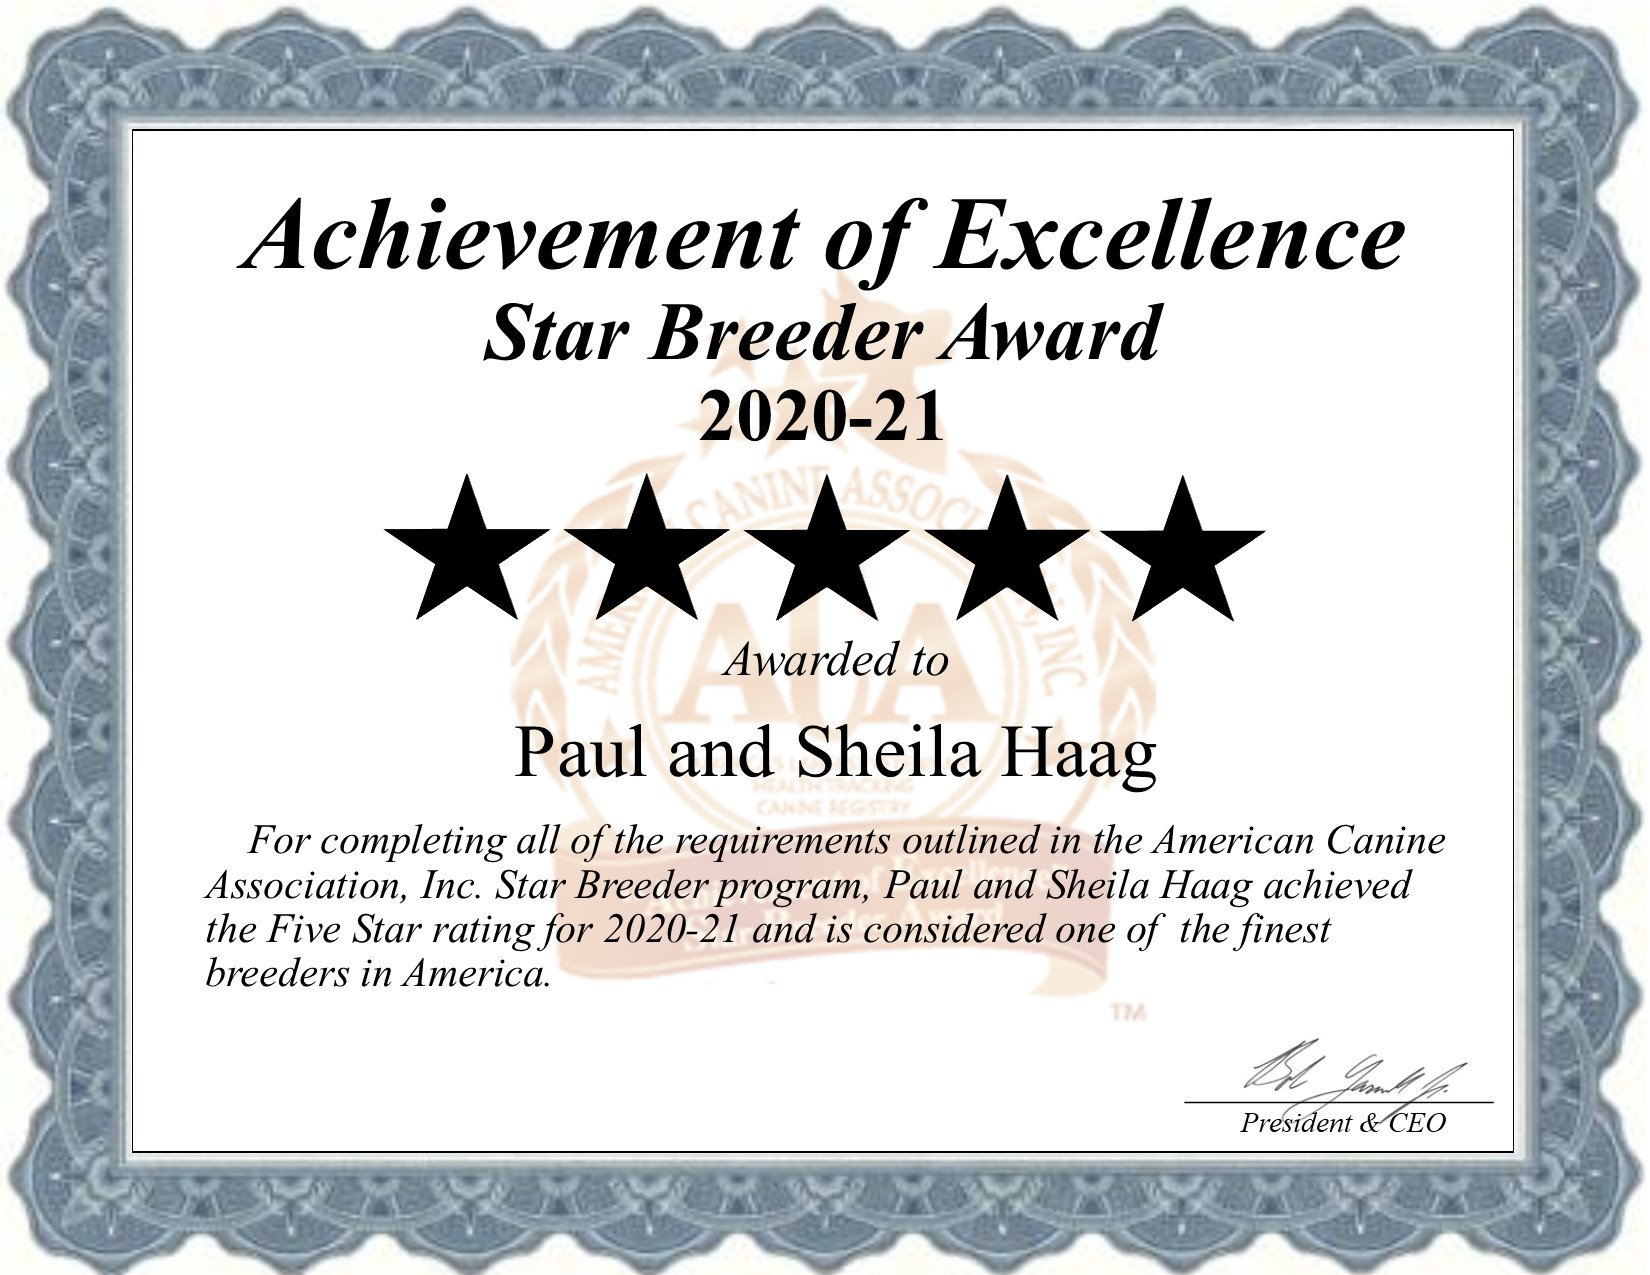 paul-sheila, haag, dog, breeder, certificate, paul-sheila-haag, aca-logo, valley-view, dog_breeder, puppies, pups, eden-valley, mn, minnesota, 41A0281, usda, number, no, 41-A-0281, show, kennels, kennel, professional, county, pure bred, purebred, five, 5, puppy, breeders, star breeder, 5 star, USDA, dog, puppy, puppies, ACA, ICA;